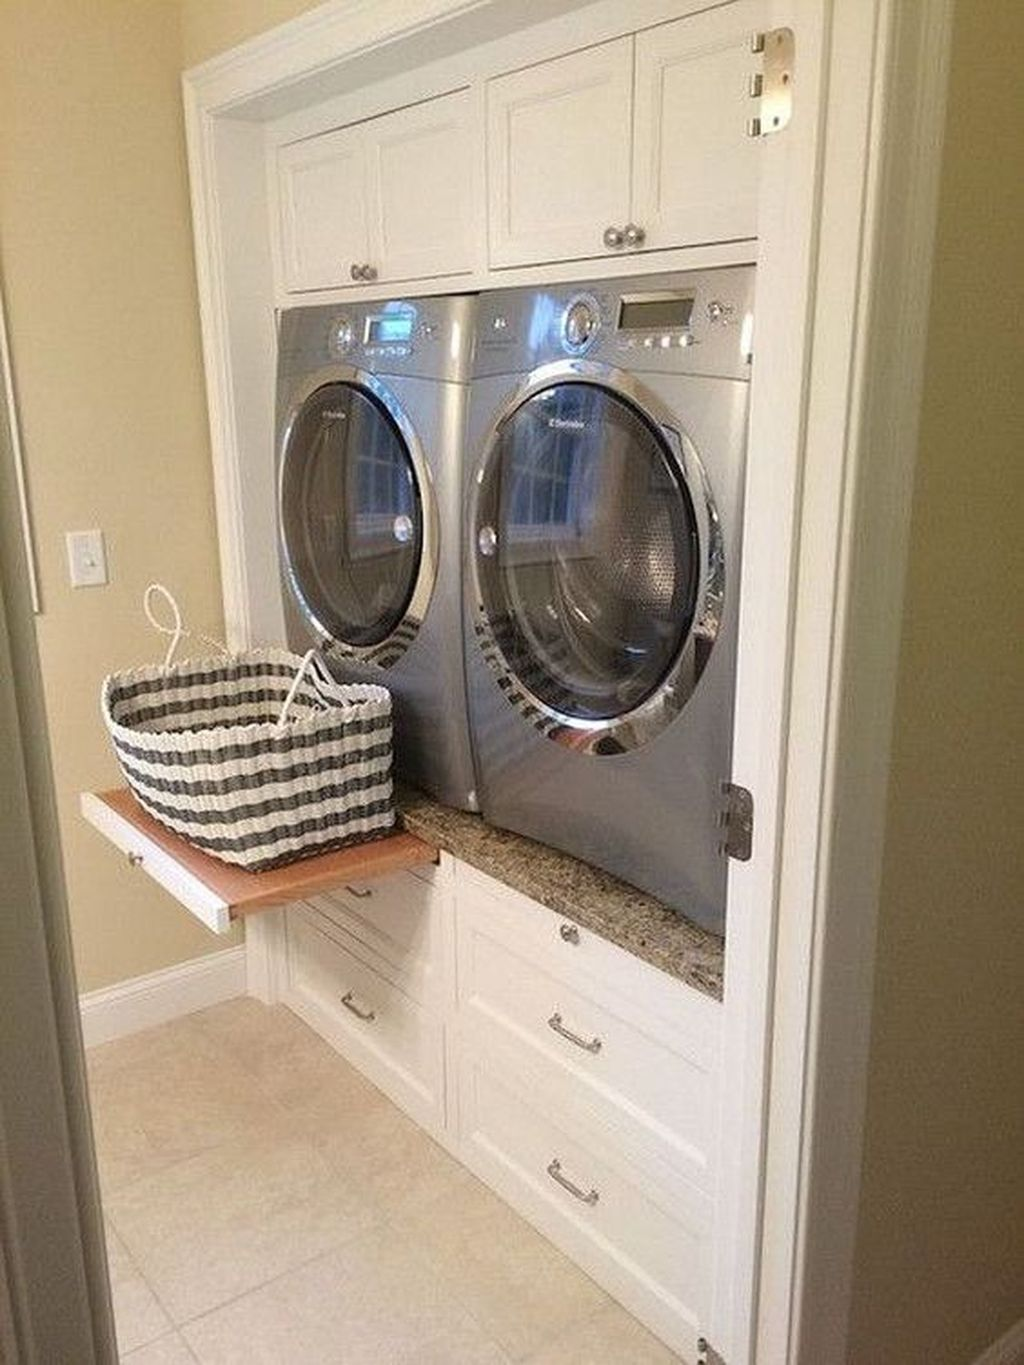 Inspiring Small Laundry Room Design And Decor Ideas 30